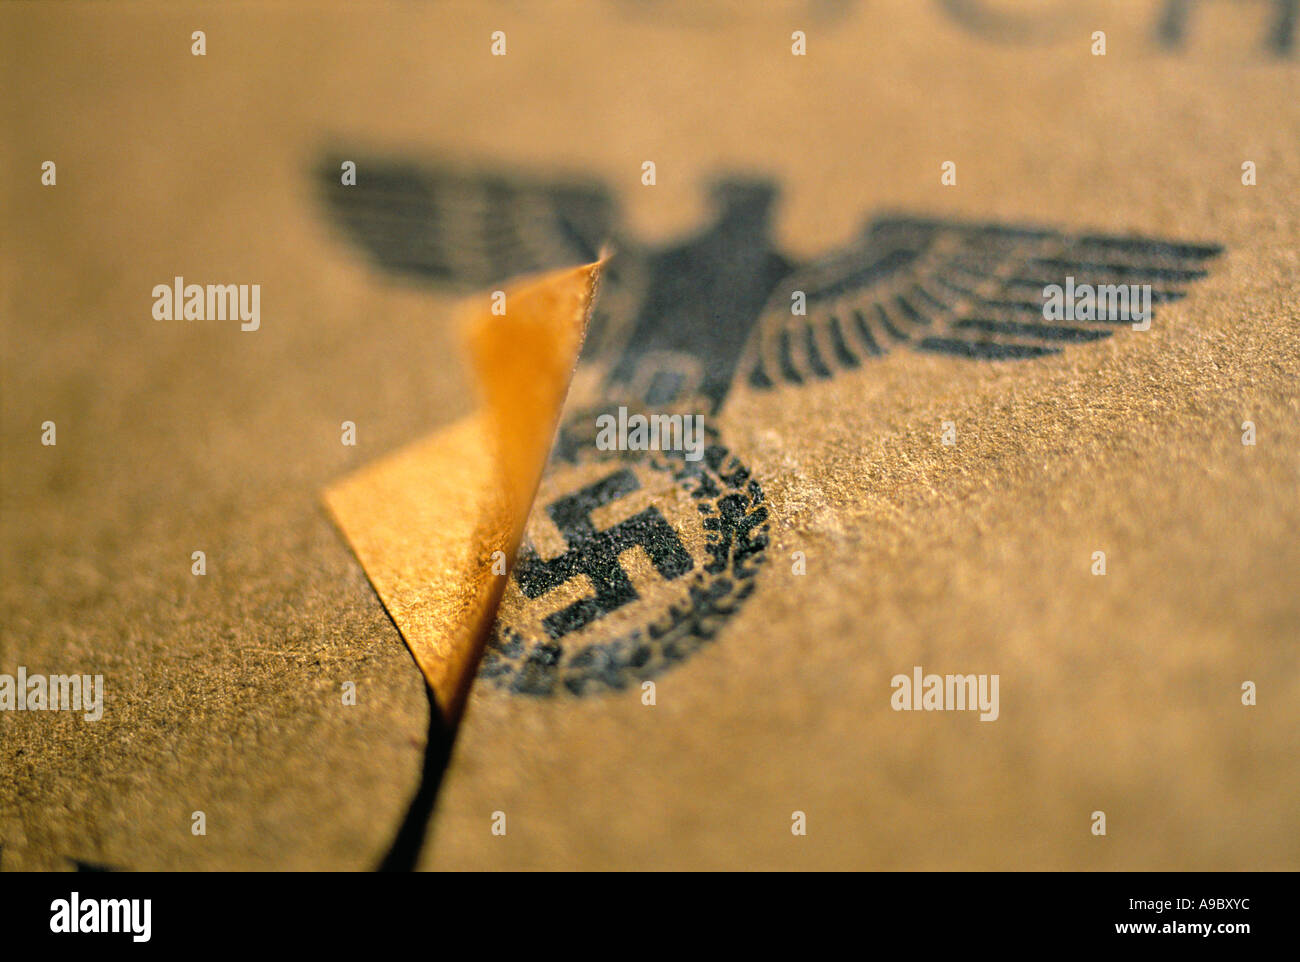 The third empire from nazi german the logo of the a german passport covered with a piece of paper after the second world war - Stock Image